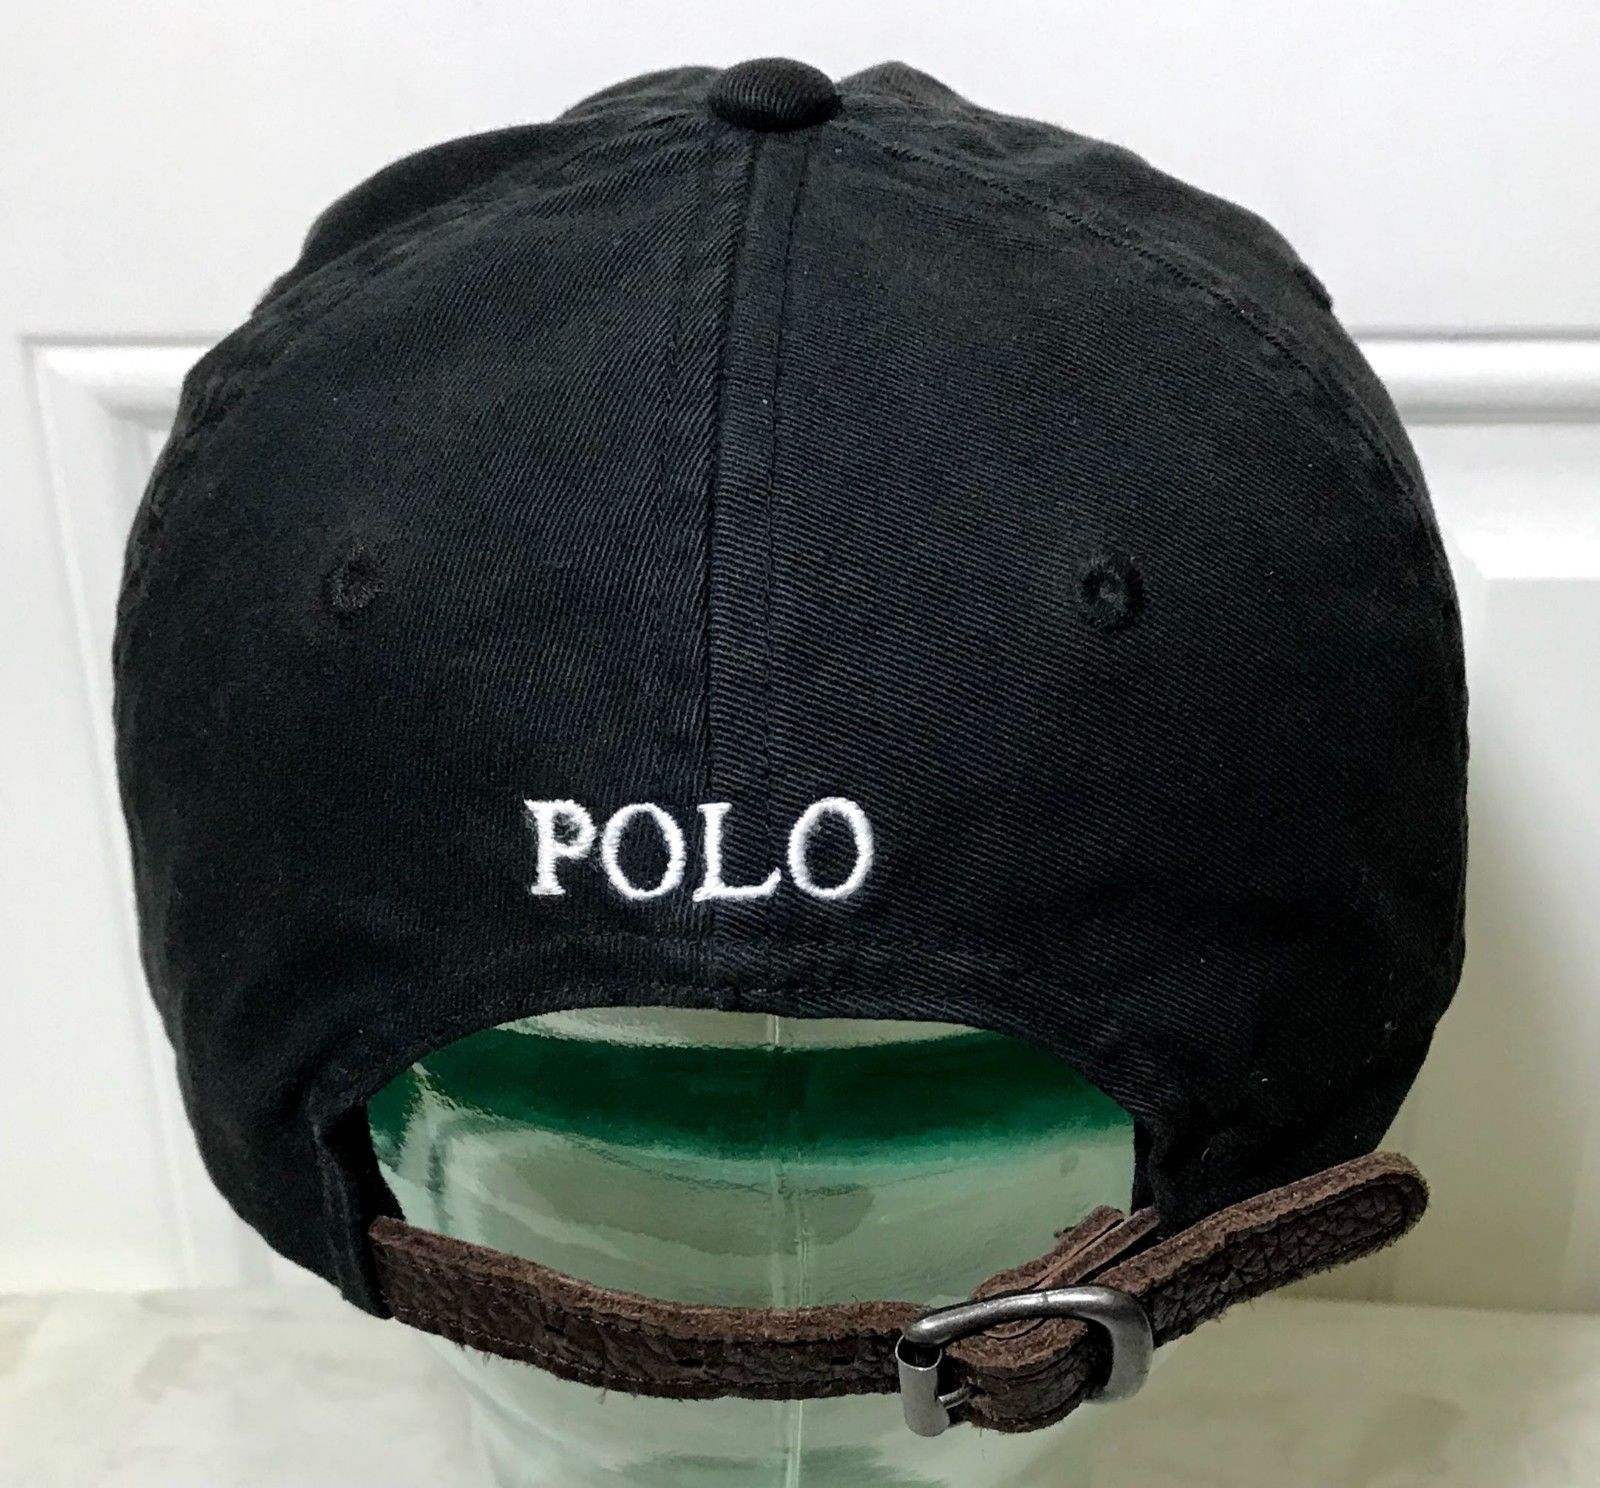 df01ce2d2b0 Polo Ralph Lauren Hat Leather Strap Pony Black Vintage 90s Dad Cap Spell  Out